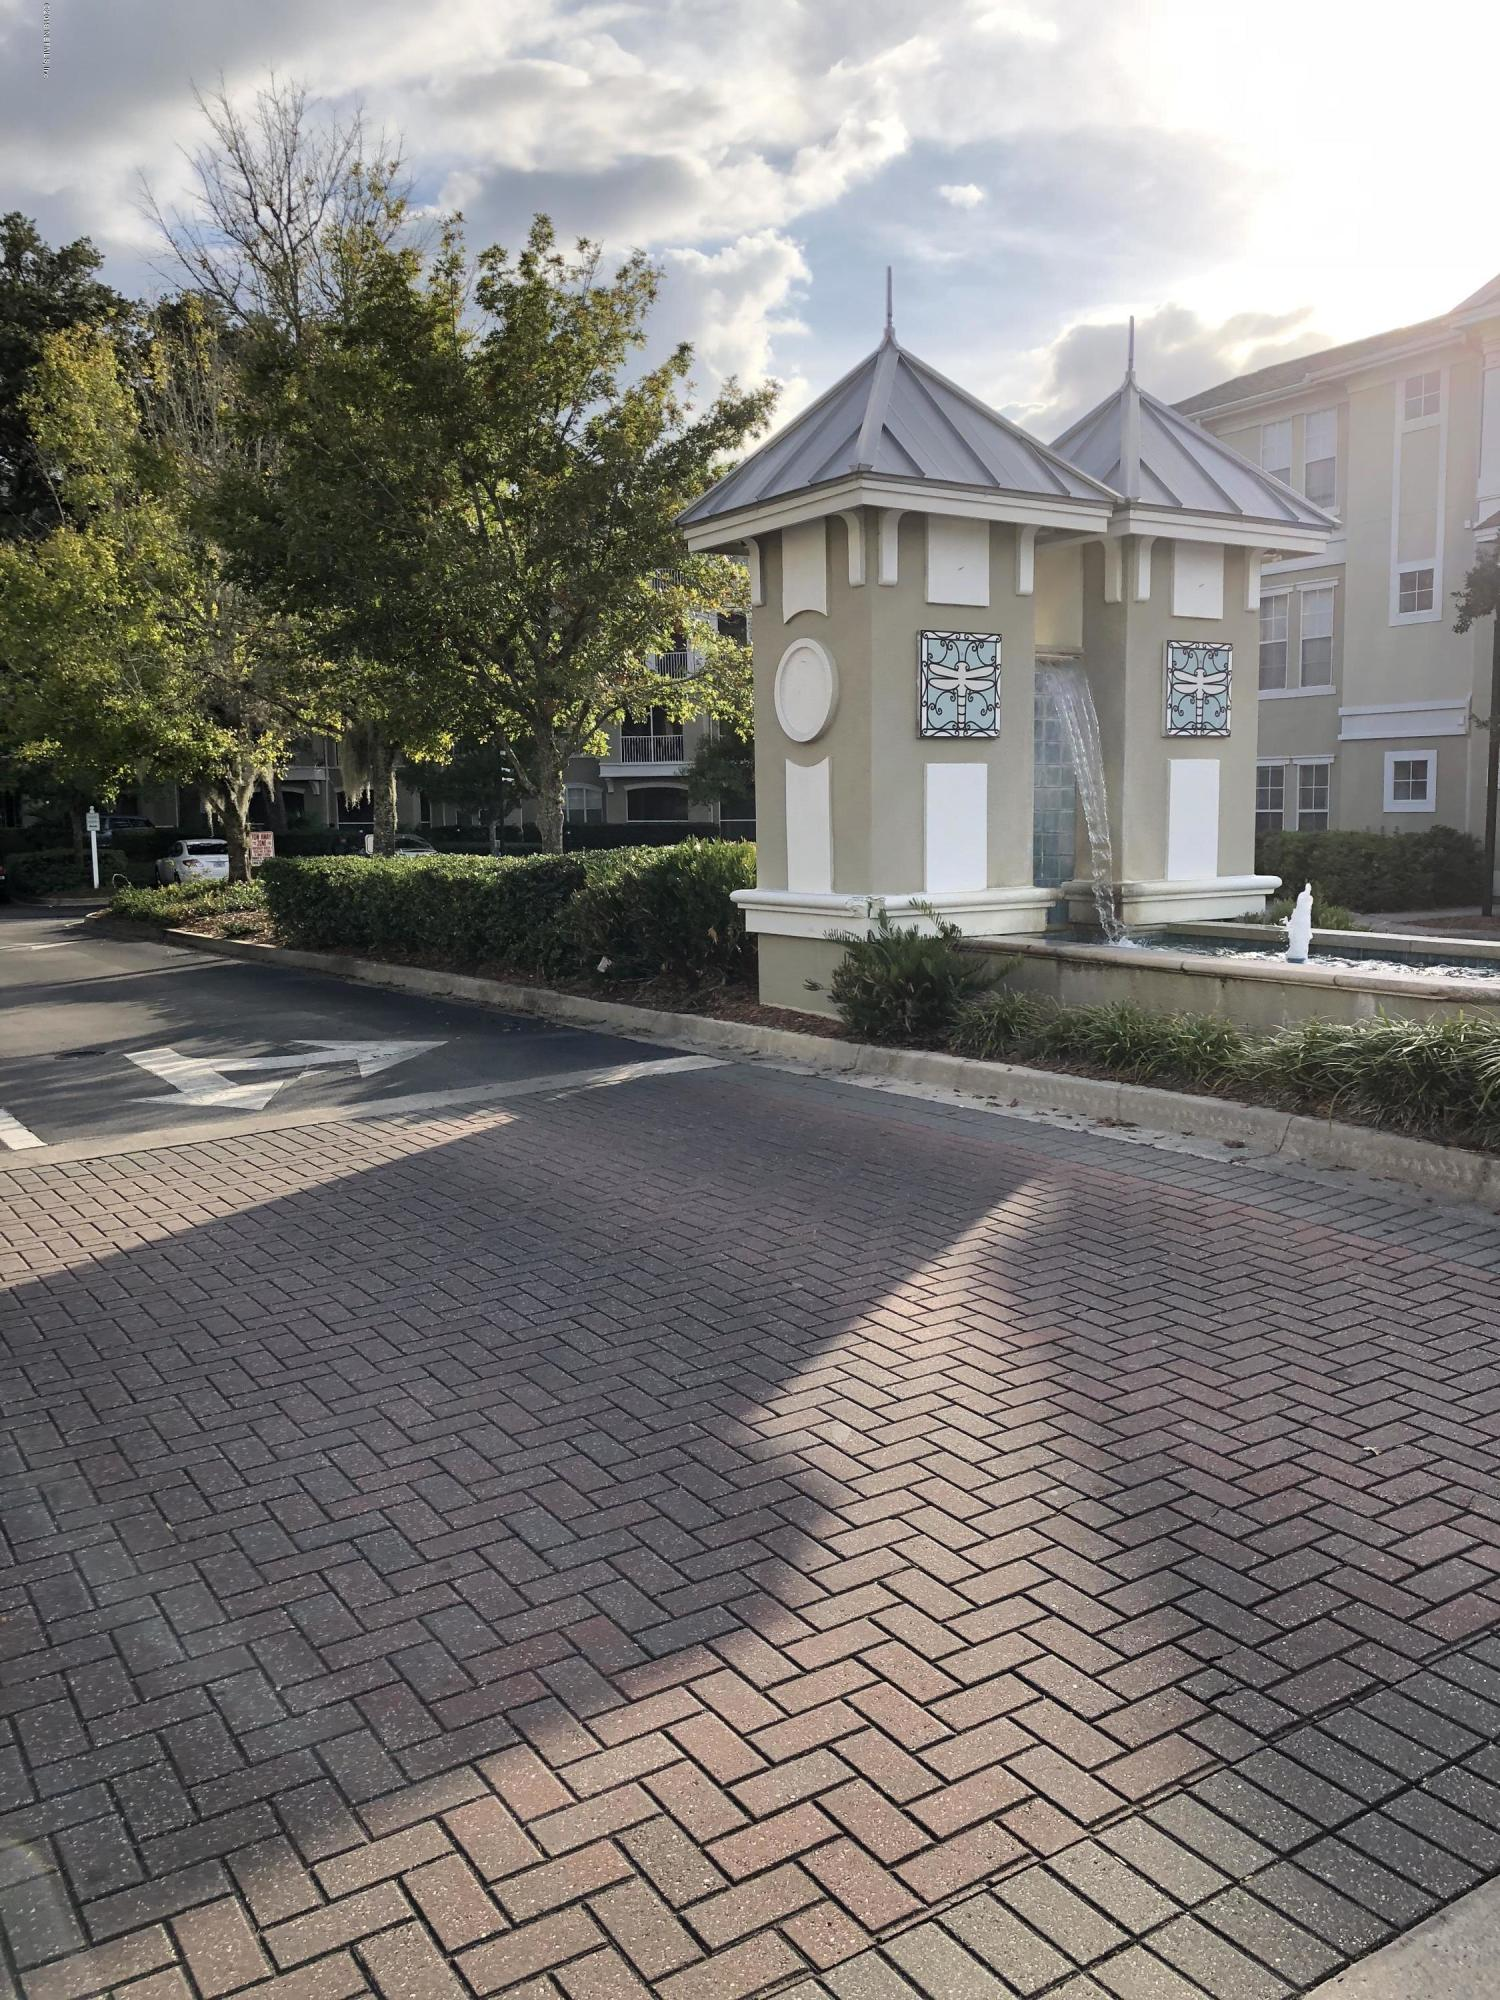 8290 GATE, JACKSONVILLE, FLORIDA 32216, 2 Bedrooms Bedrooms, ,2 BathroomsBathrooms,Residential - condos/townhomes,For sale,GATE,985507